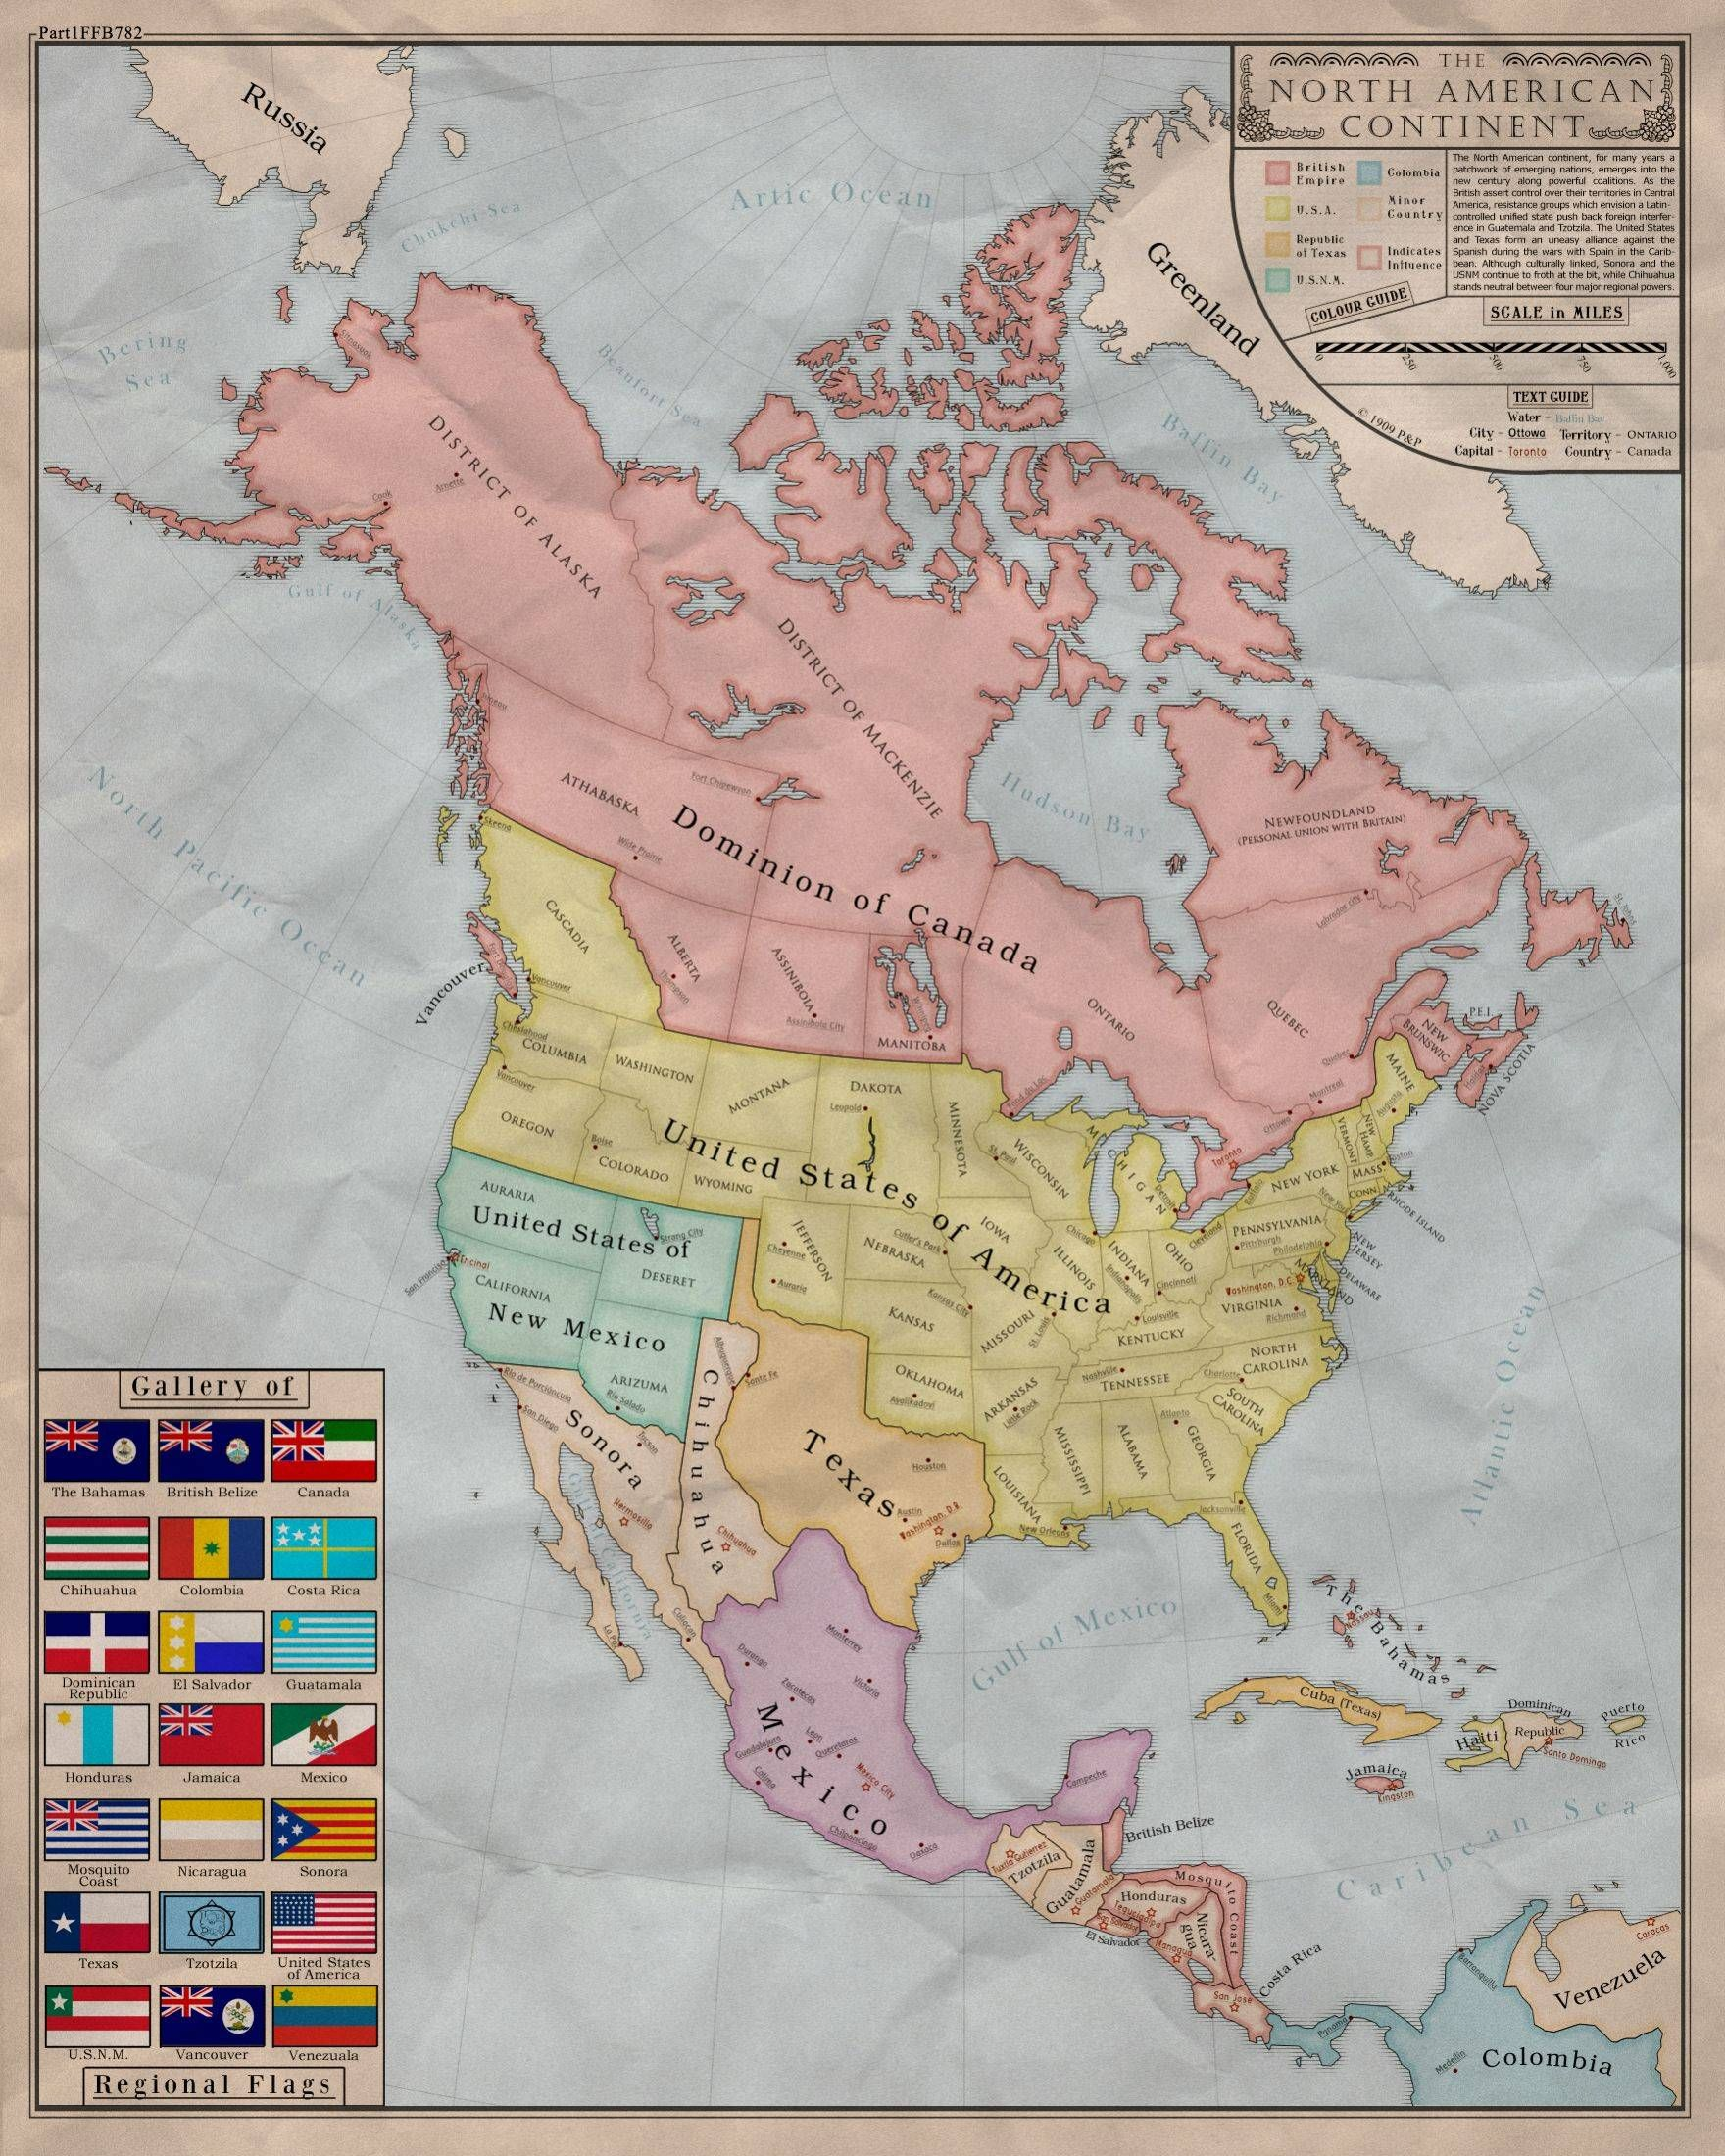 An alternate history map of north america 1760x2200 history 1 an alternate history map of north america freerunsca Image collections